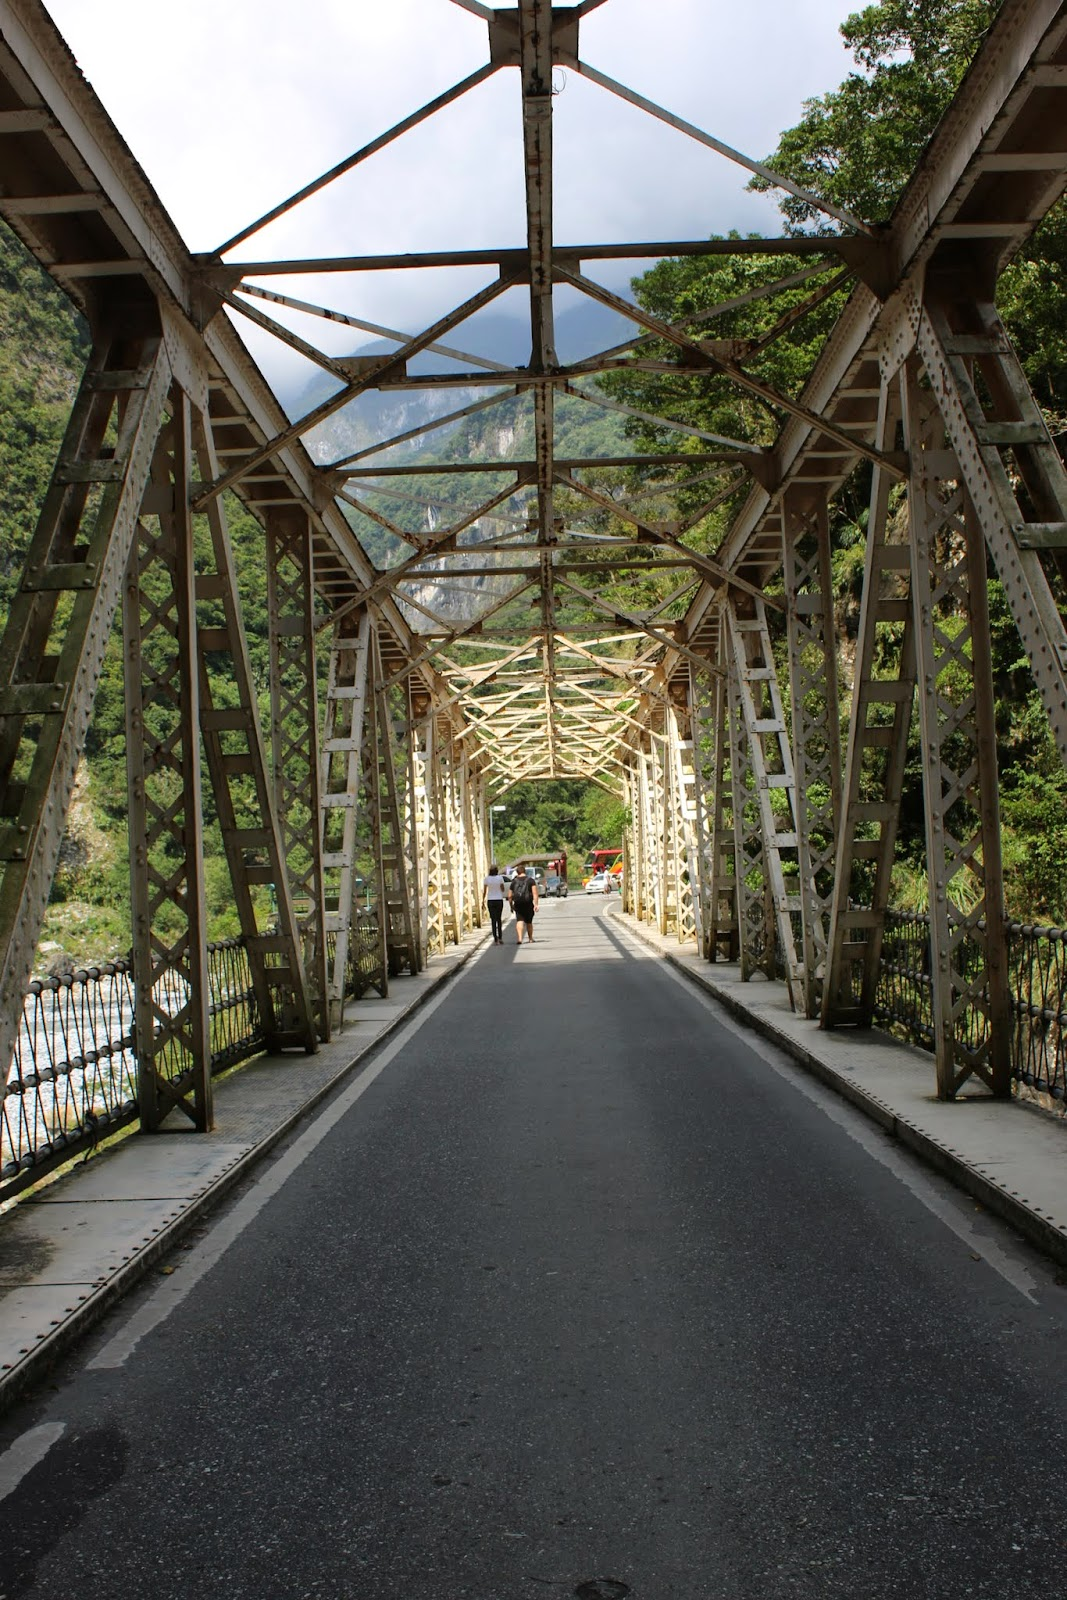 Changchun Bridge  nearby Eternal Spring Shrine at Taroko Gorge National Park in Hualien, Taiwan